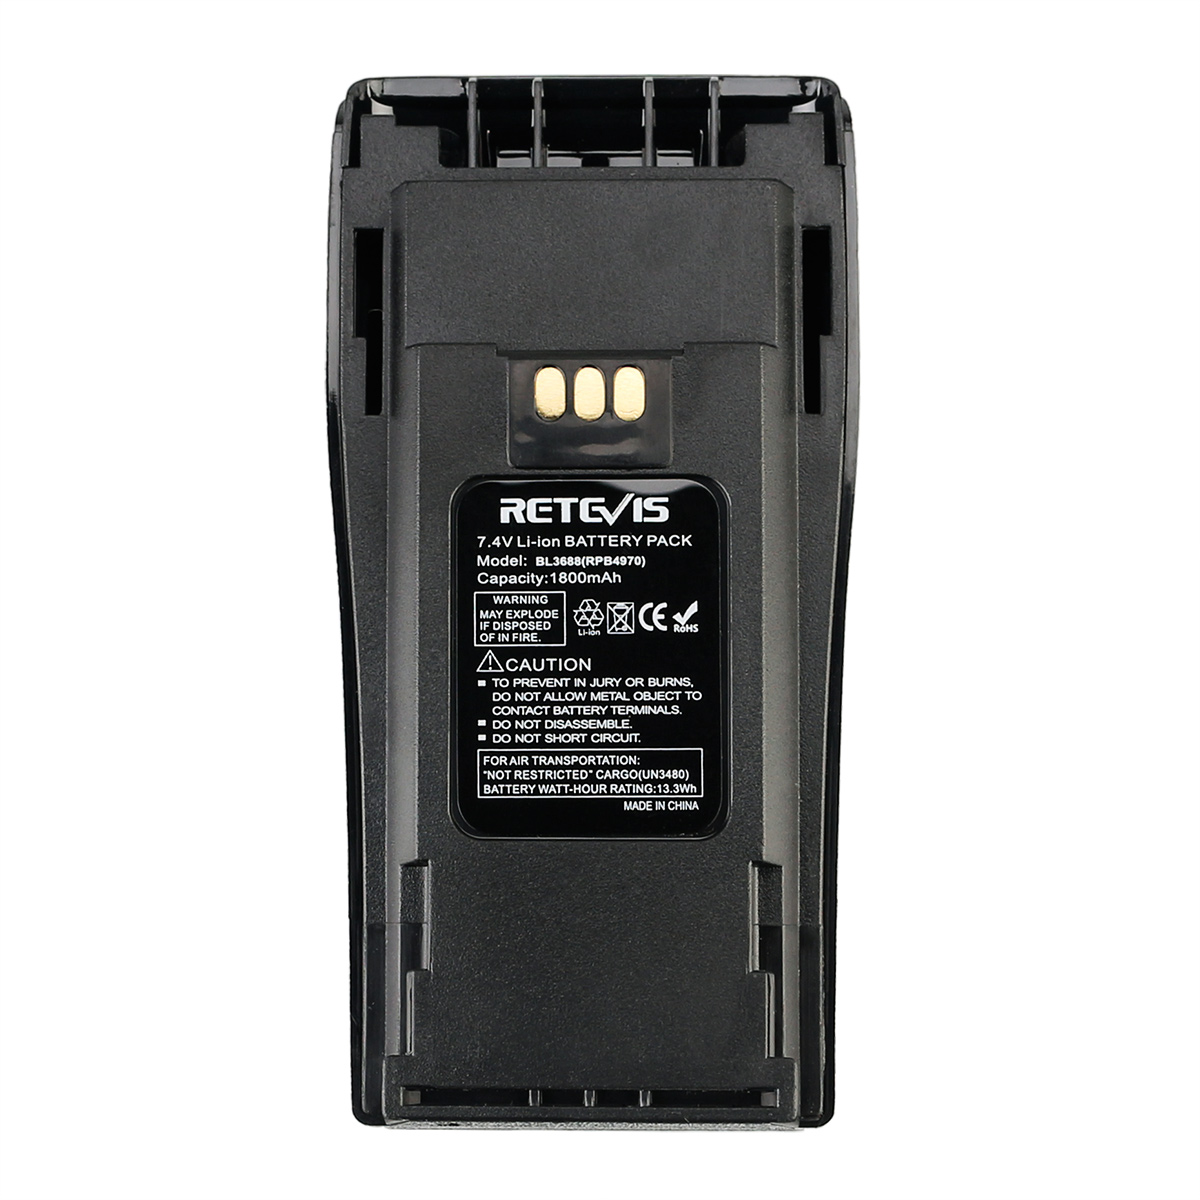 Retevis BL3688 Handheld Radio 7.4v 1800mAh Li-ion <strong>Battery</strong> for Motorola CP140/150/180/200/400/PR400/CP040/EP450/GP3188/GP3688